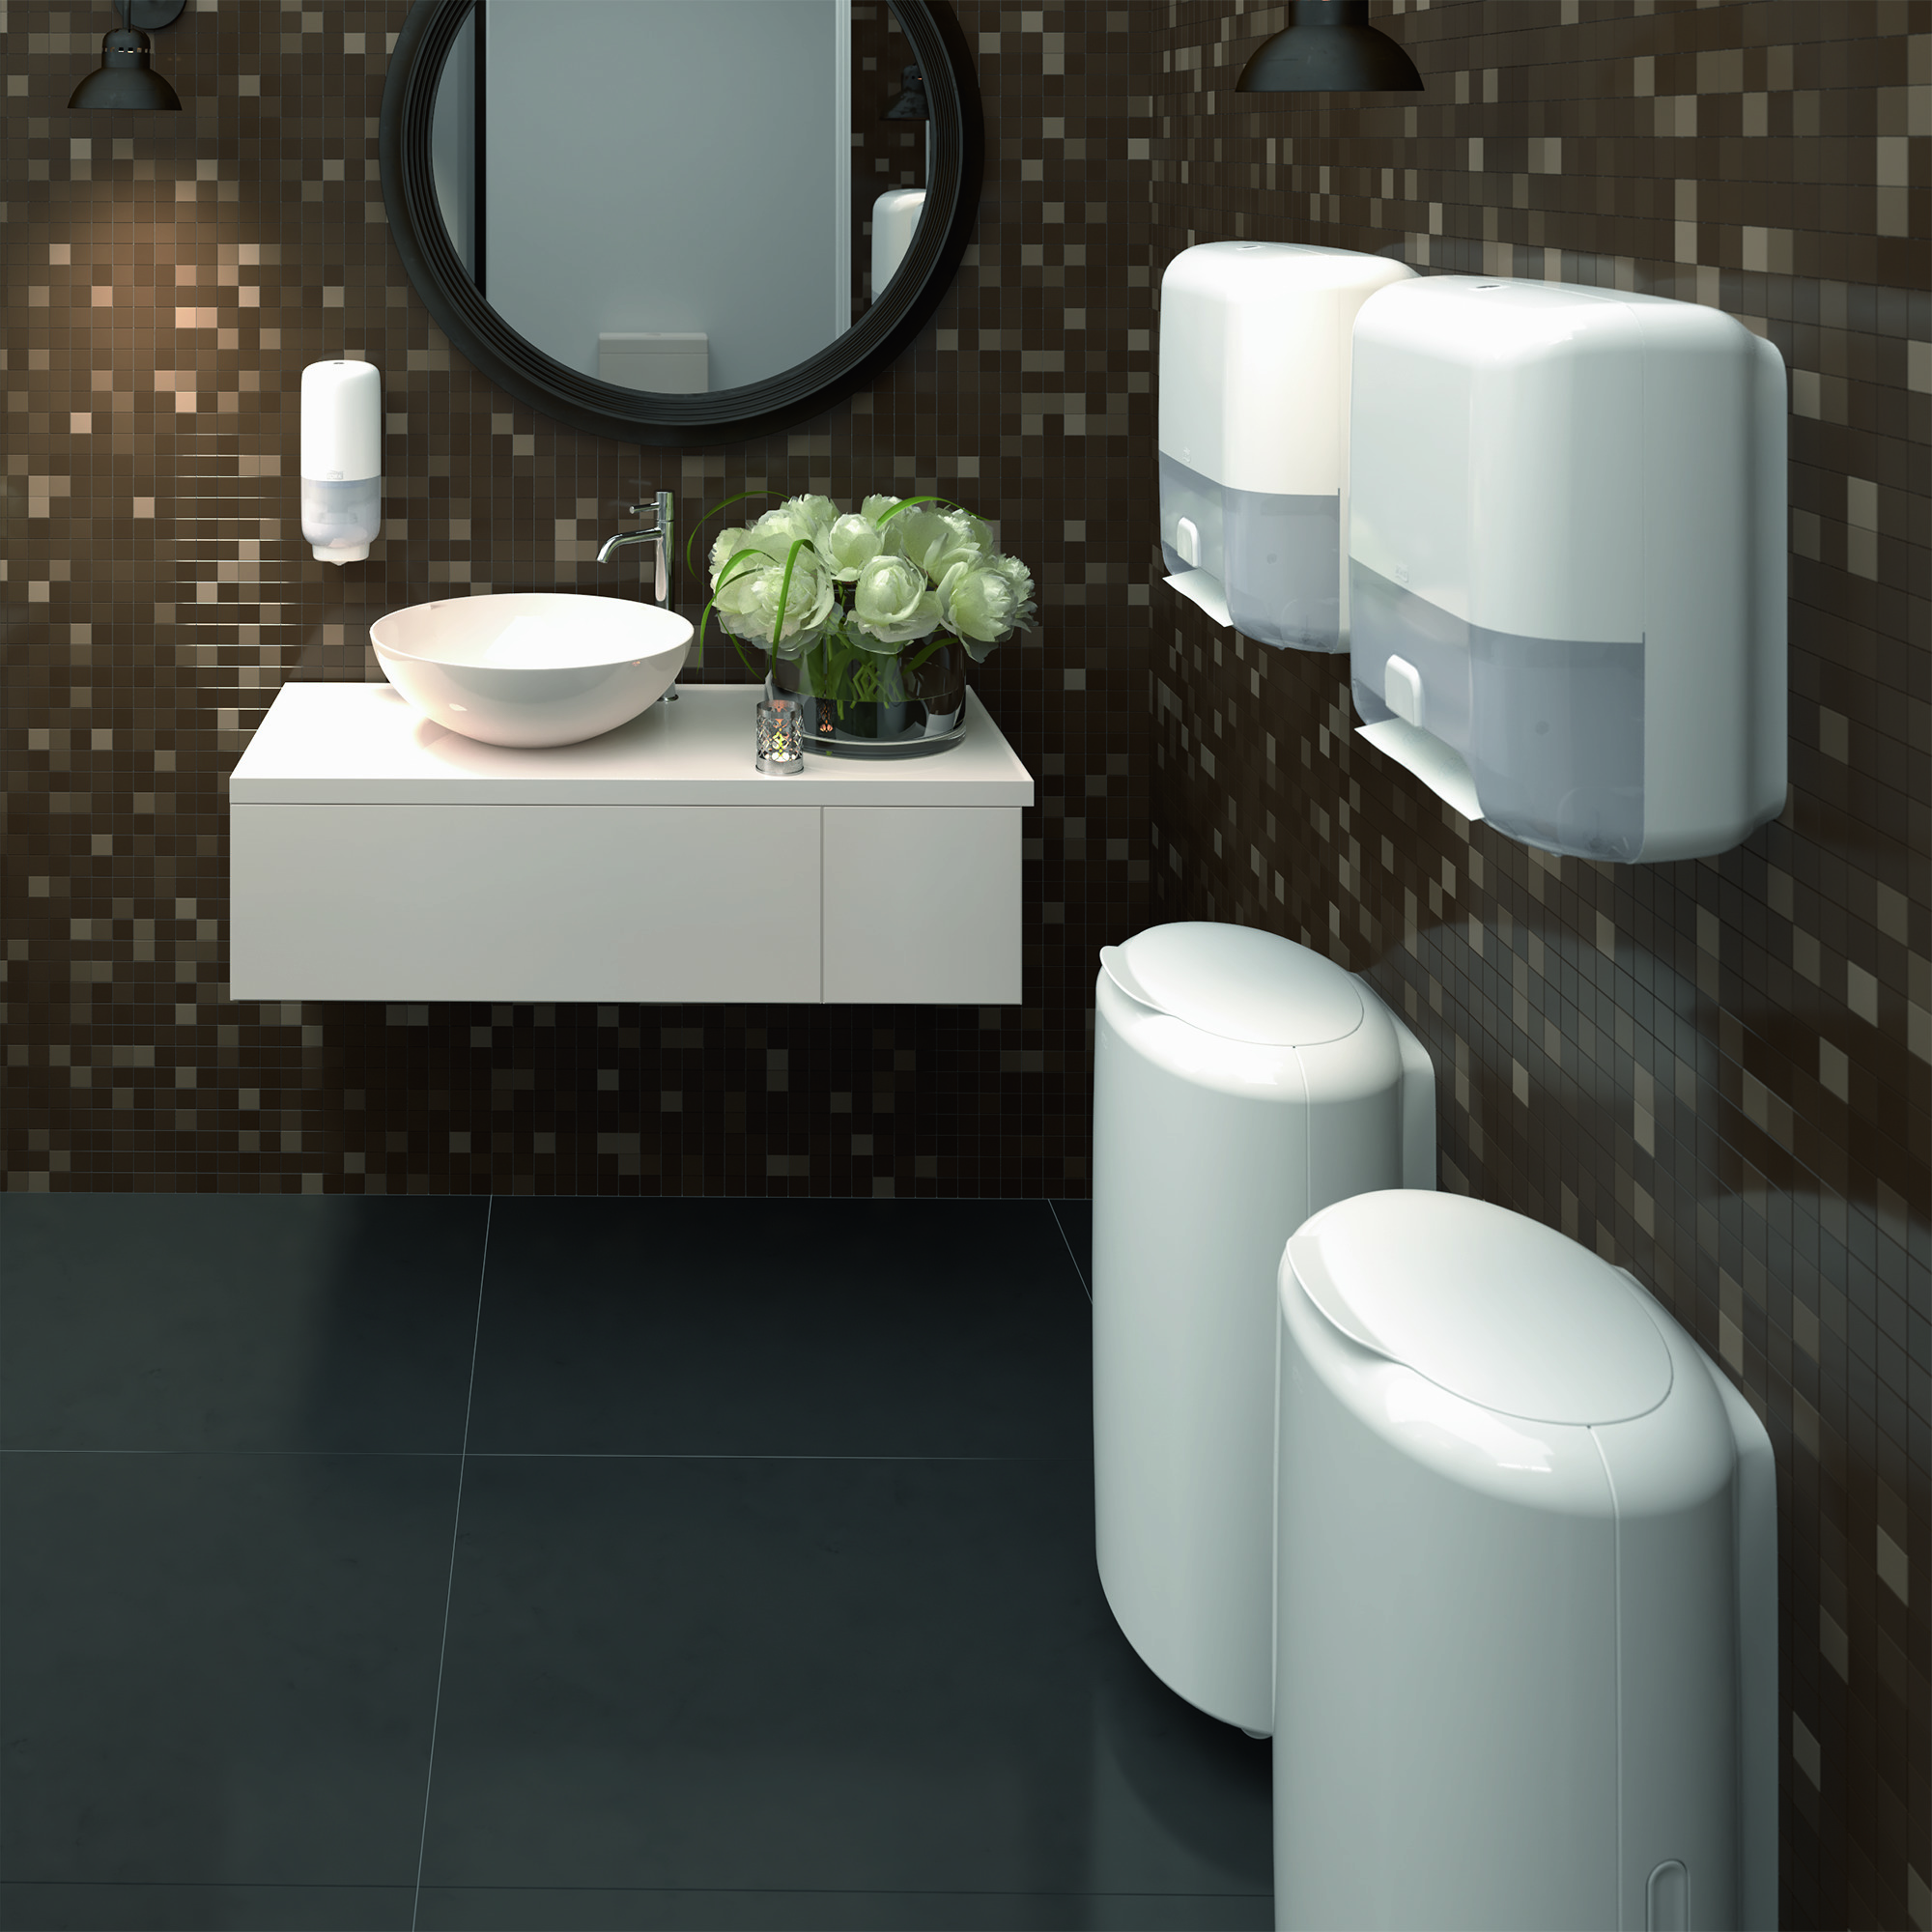 image-01-washroom-wow-factor-551100-5560